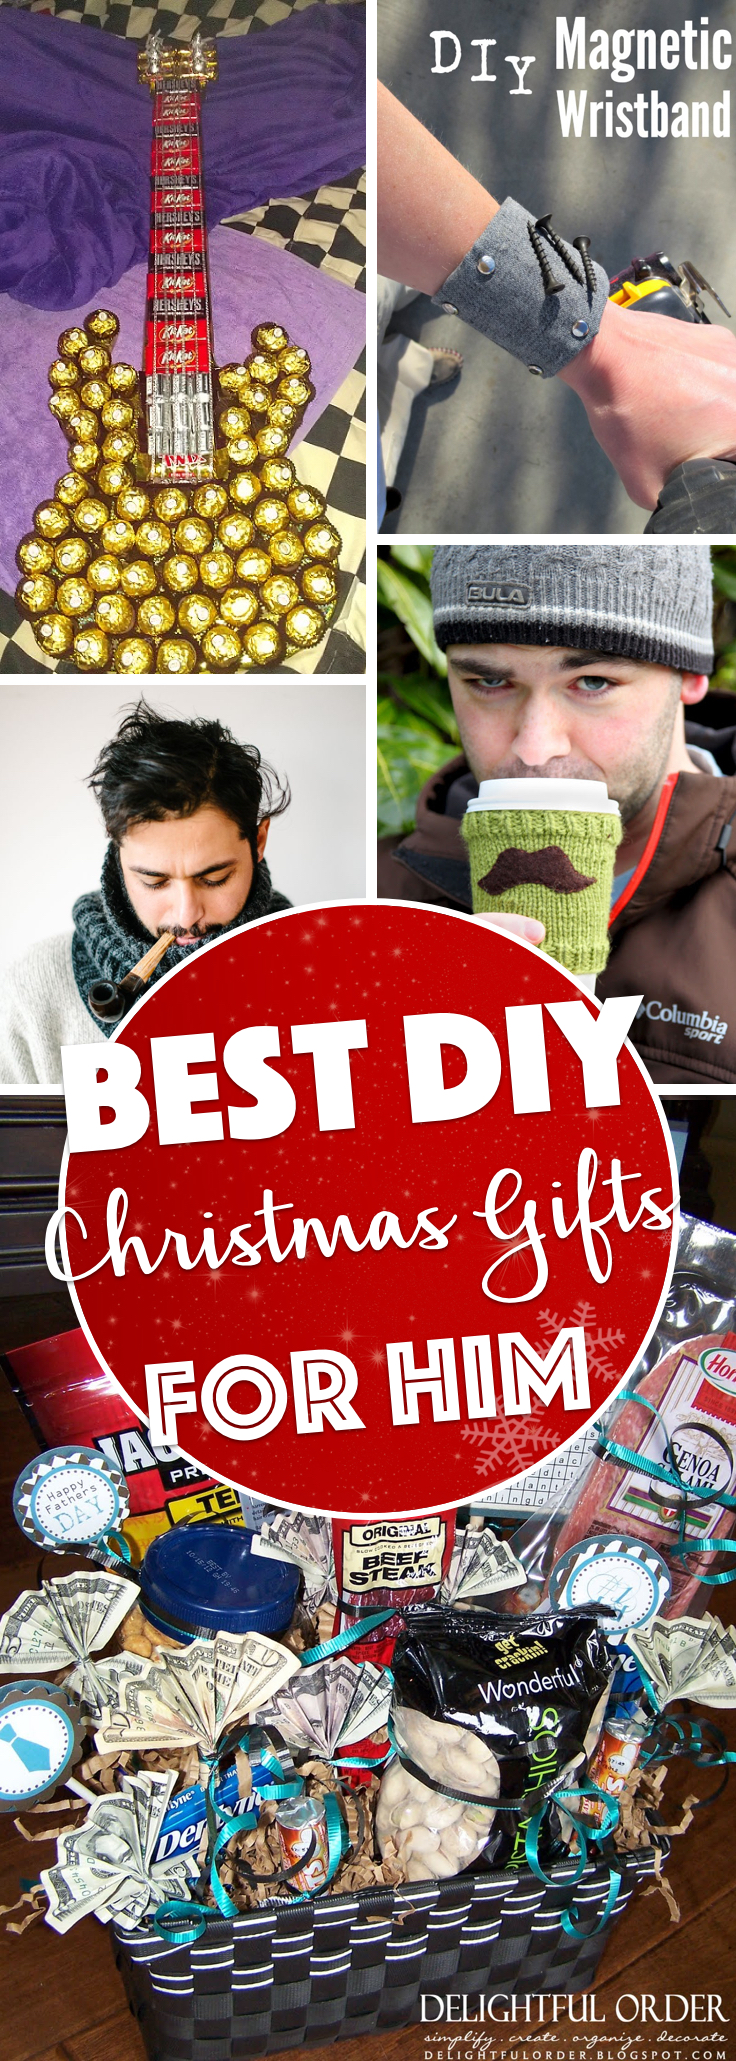 Christmas Gift For Boyfriend Diy.56 Diy Christmas Gifts For Him Worthy Enough To Take His